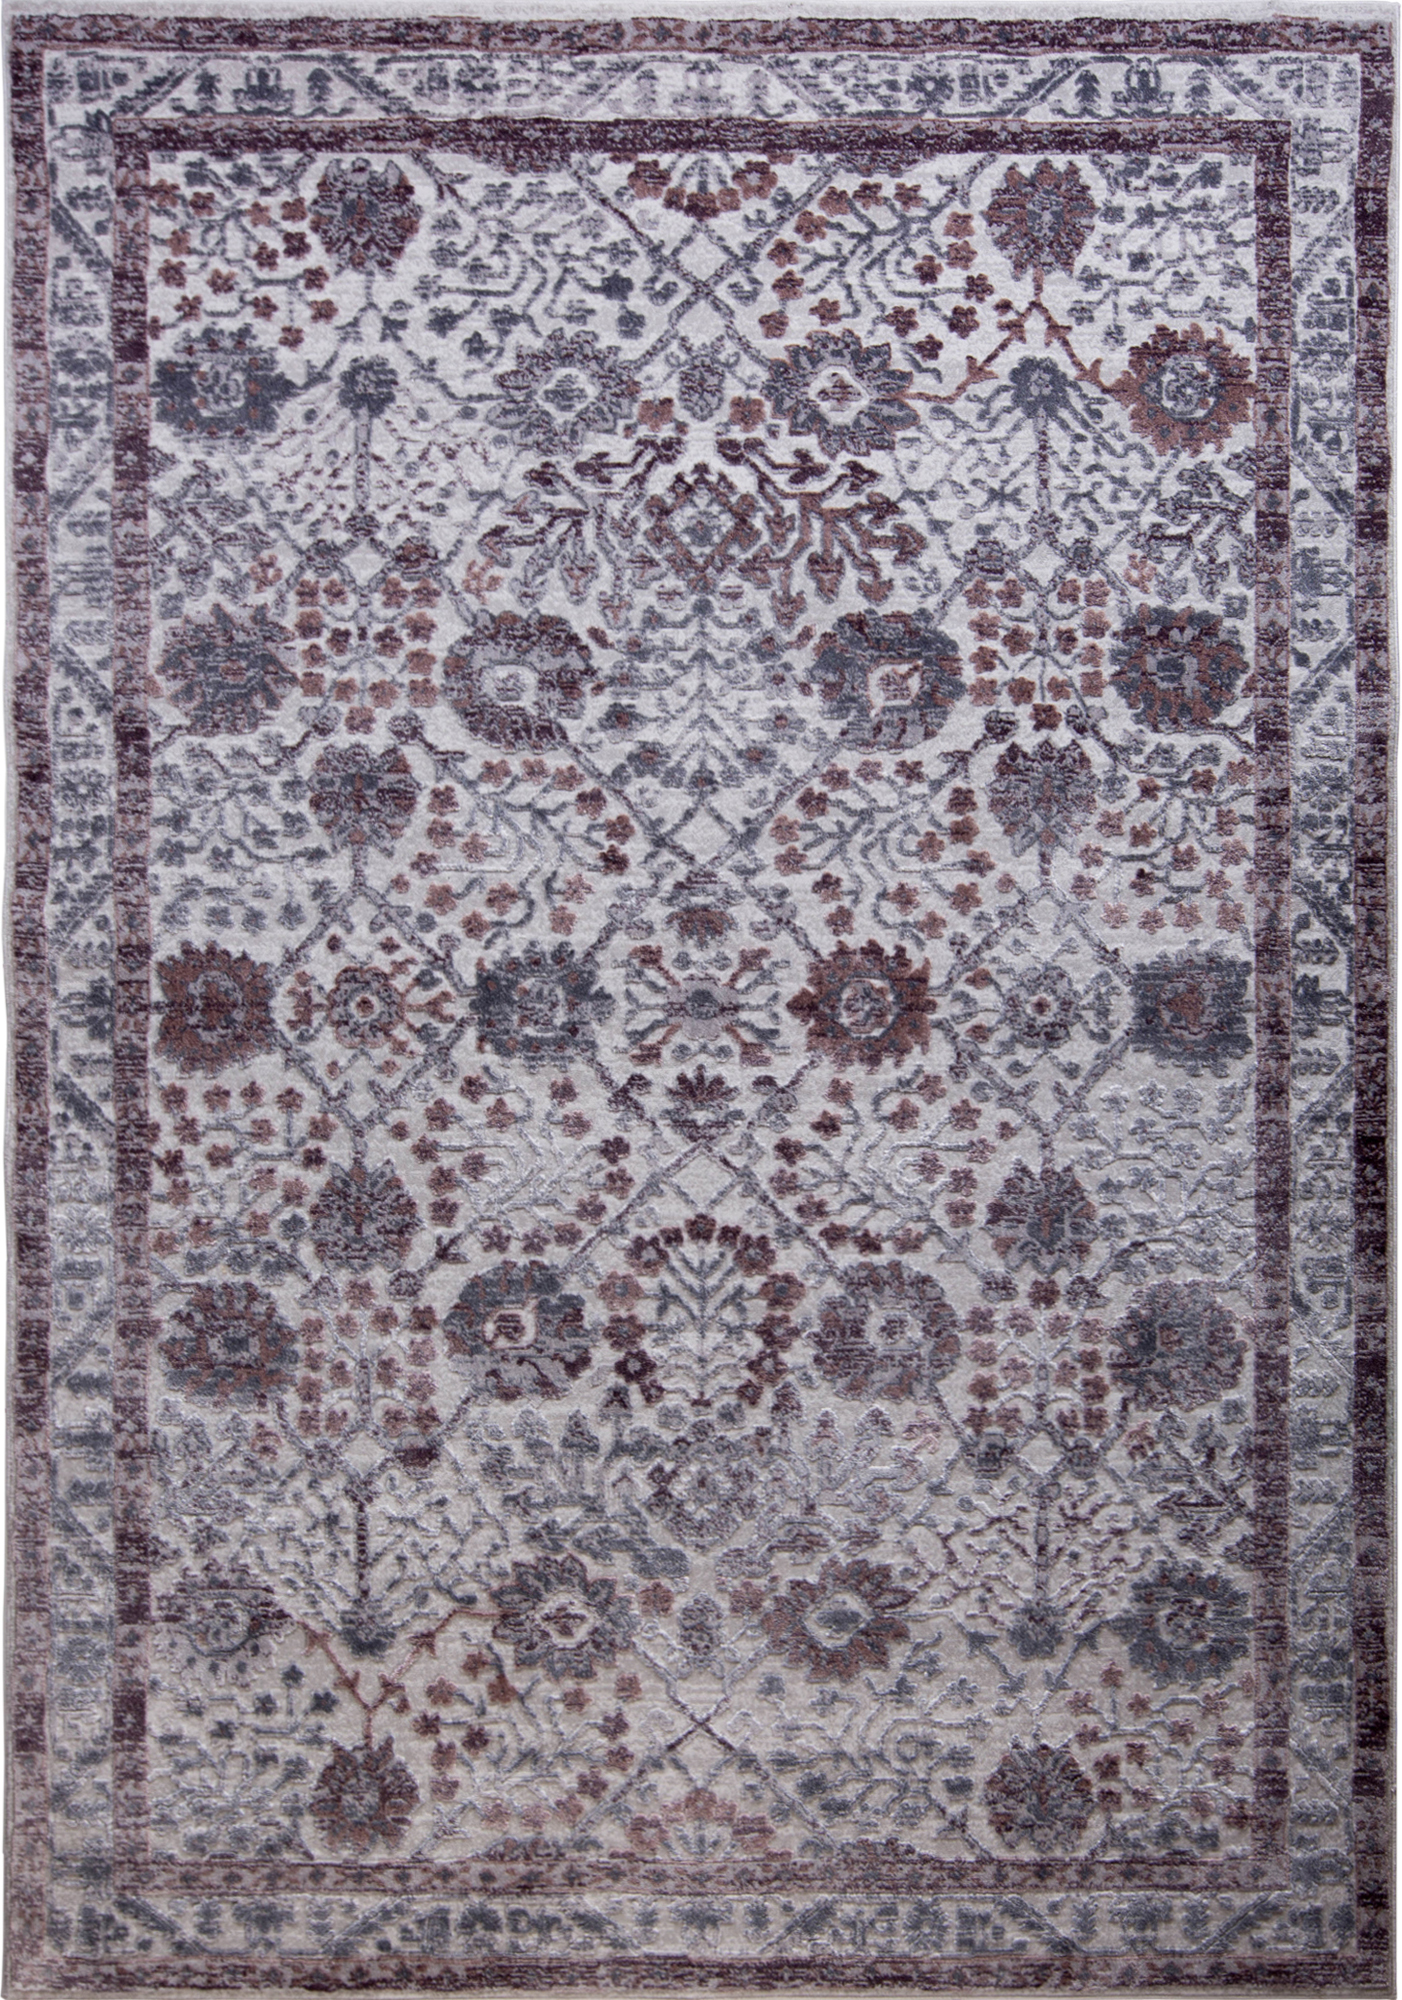 oat rugs home miller kenmare area gray by garden overstock product latex today shipping free medallion rug nicole